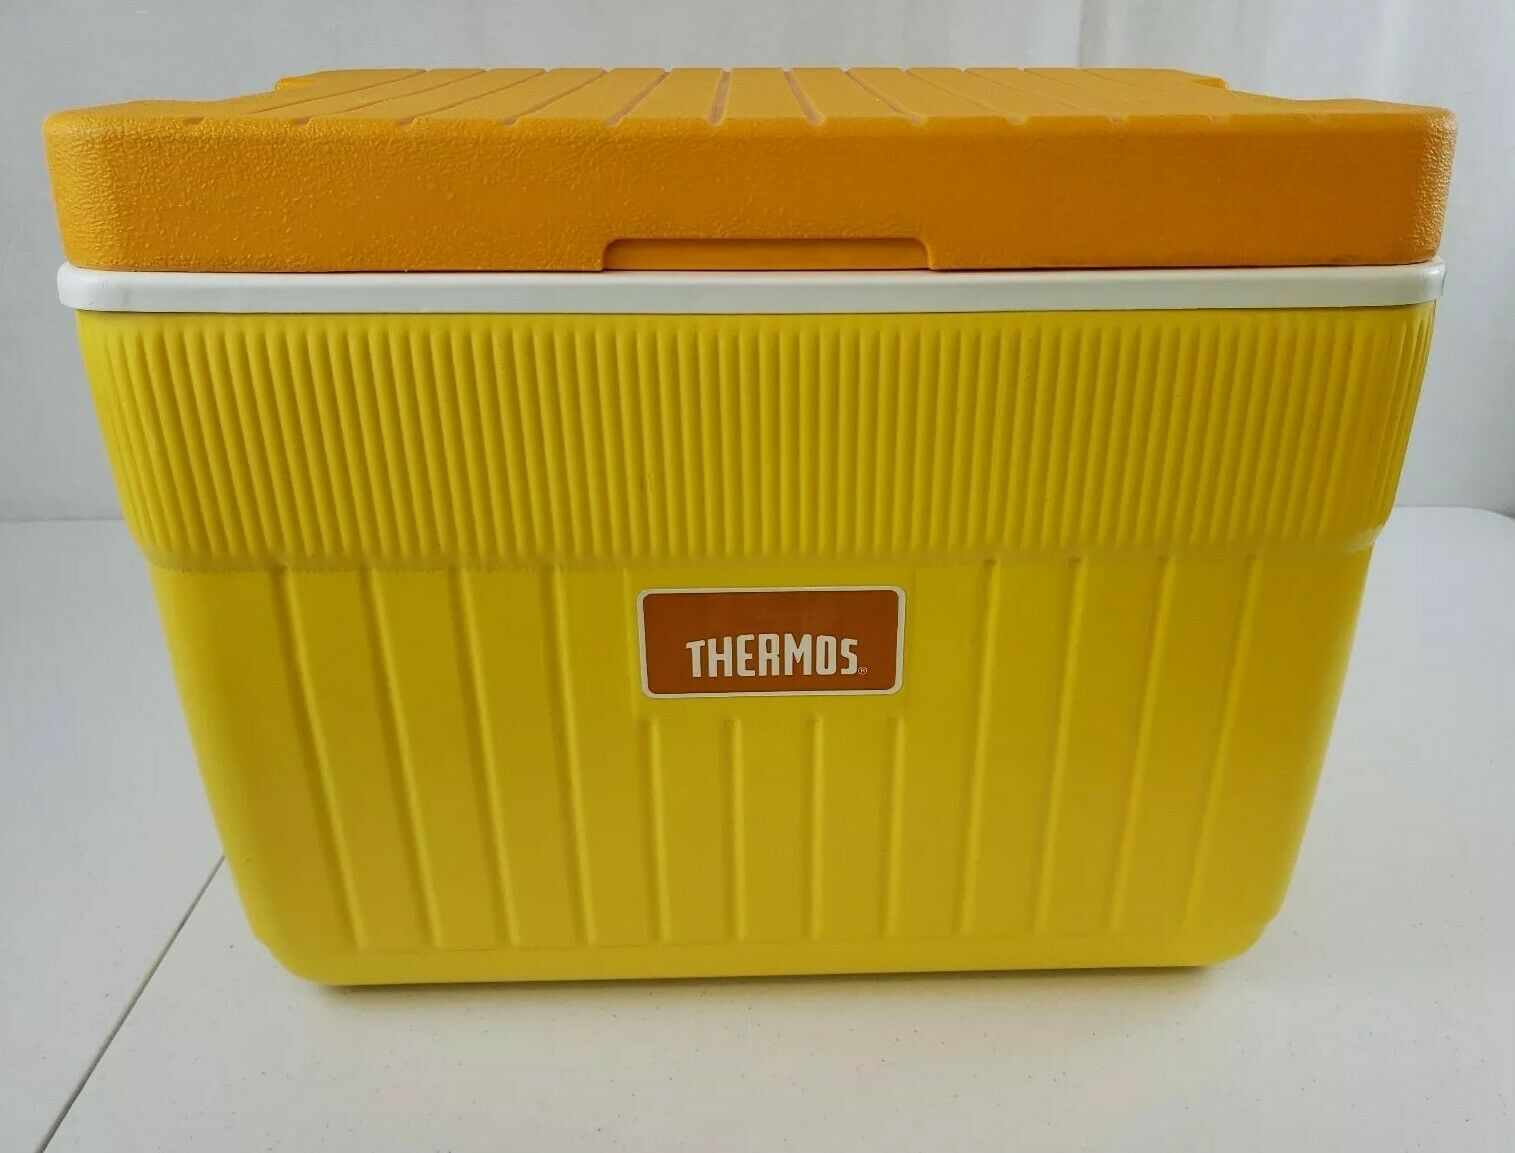 Thermos Vintage YELLOW orange RARE Cooler Ice Chest Camping 35-QT  33-Litre  high quality